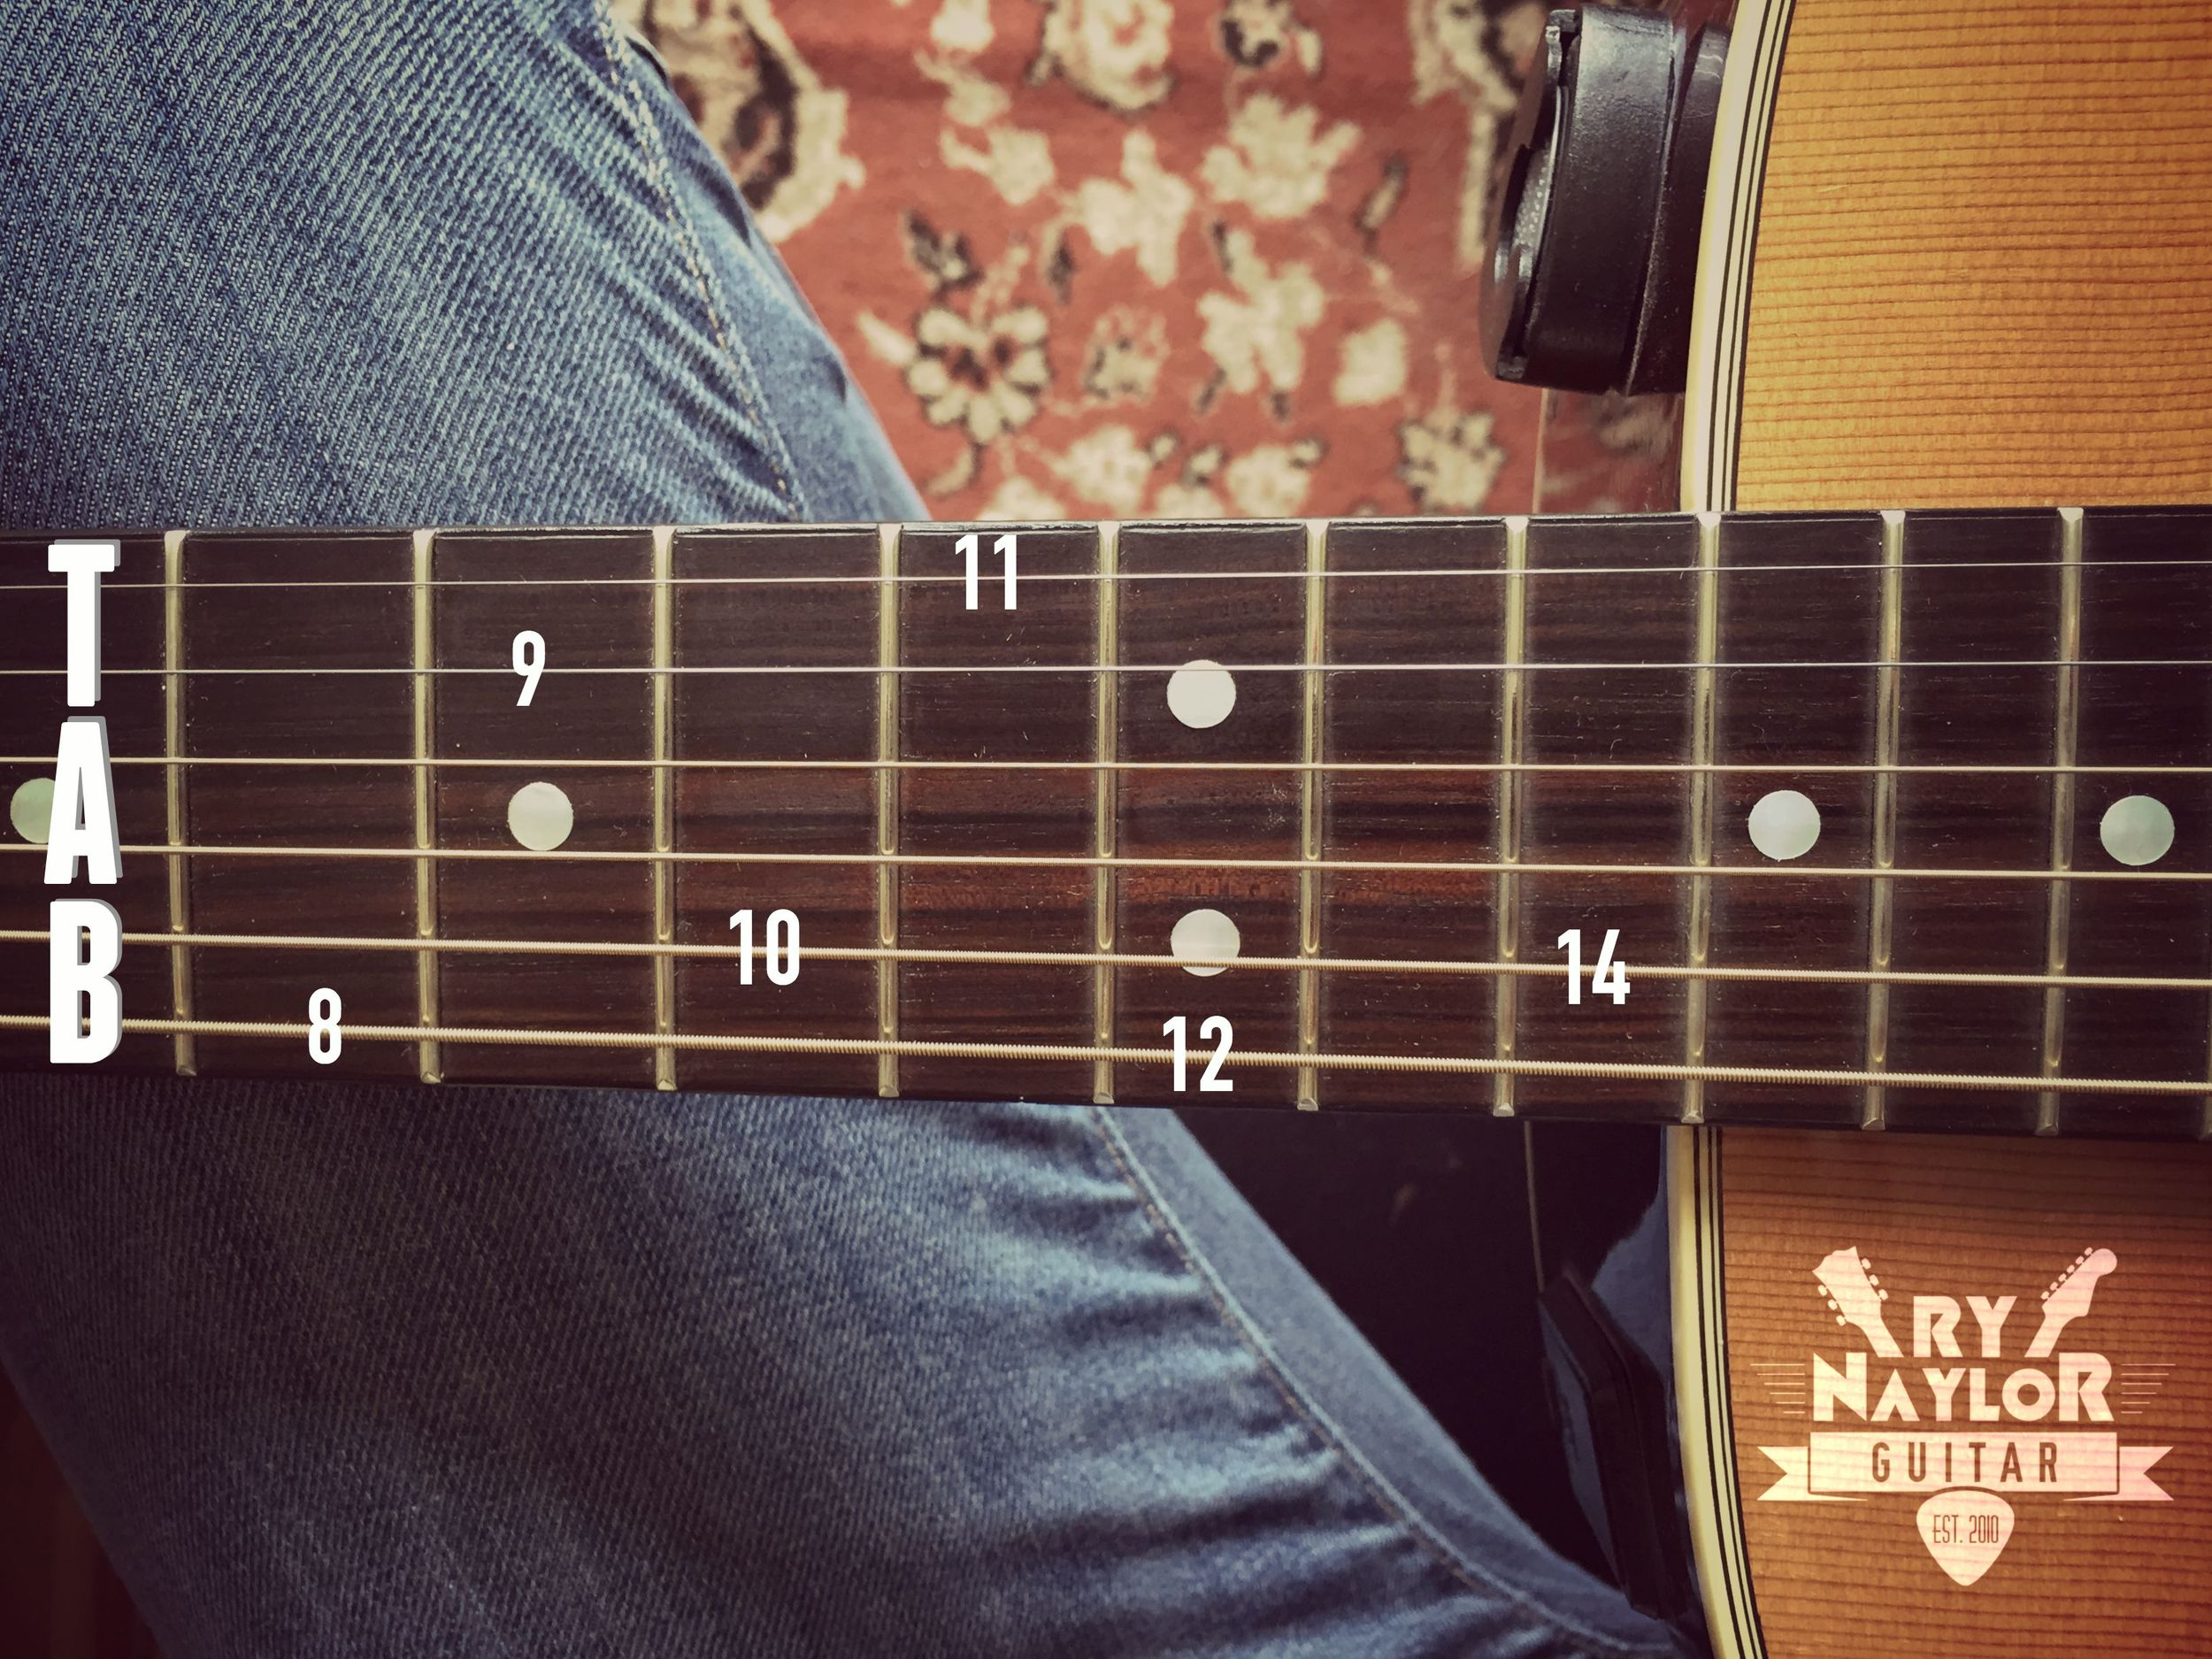 Place the guitar on your lap and look down at the strings to be sure of their arrangement on a line of TAB.